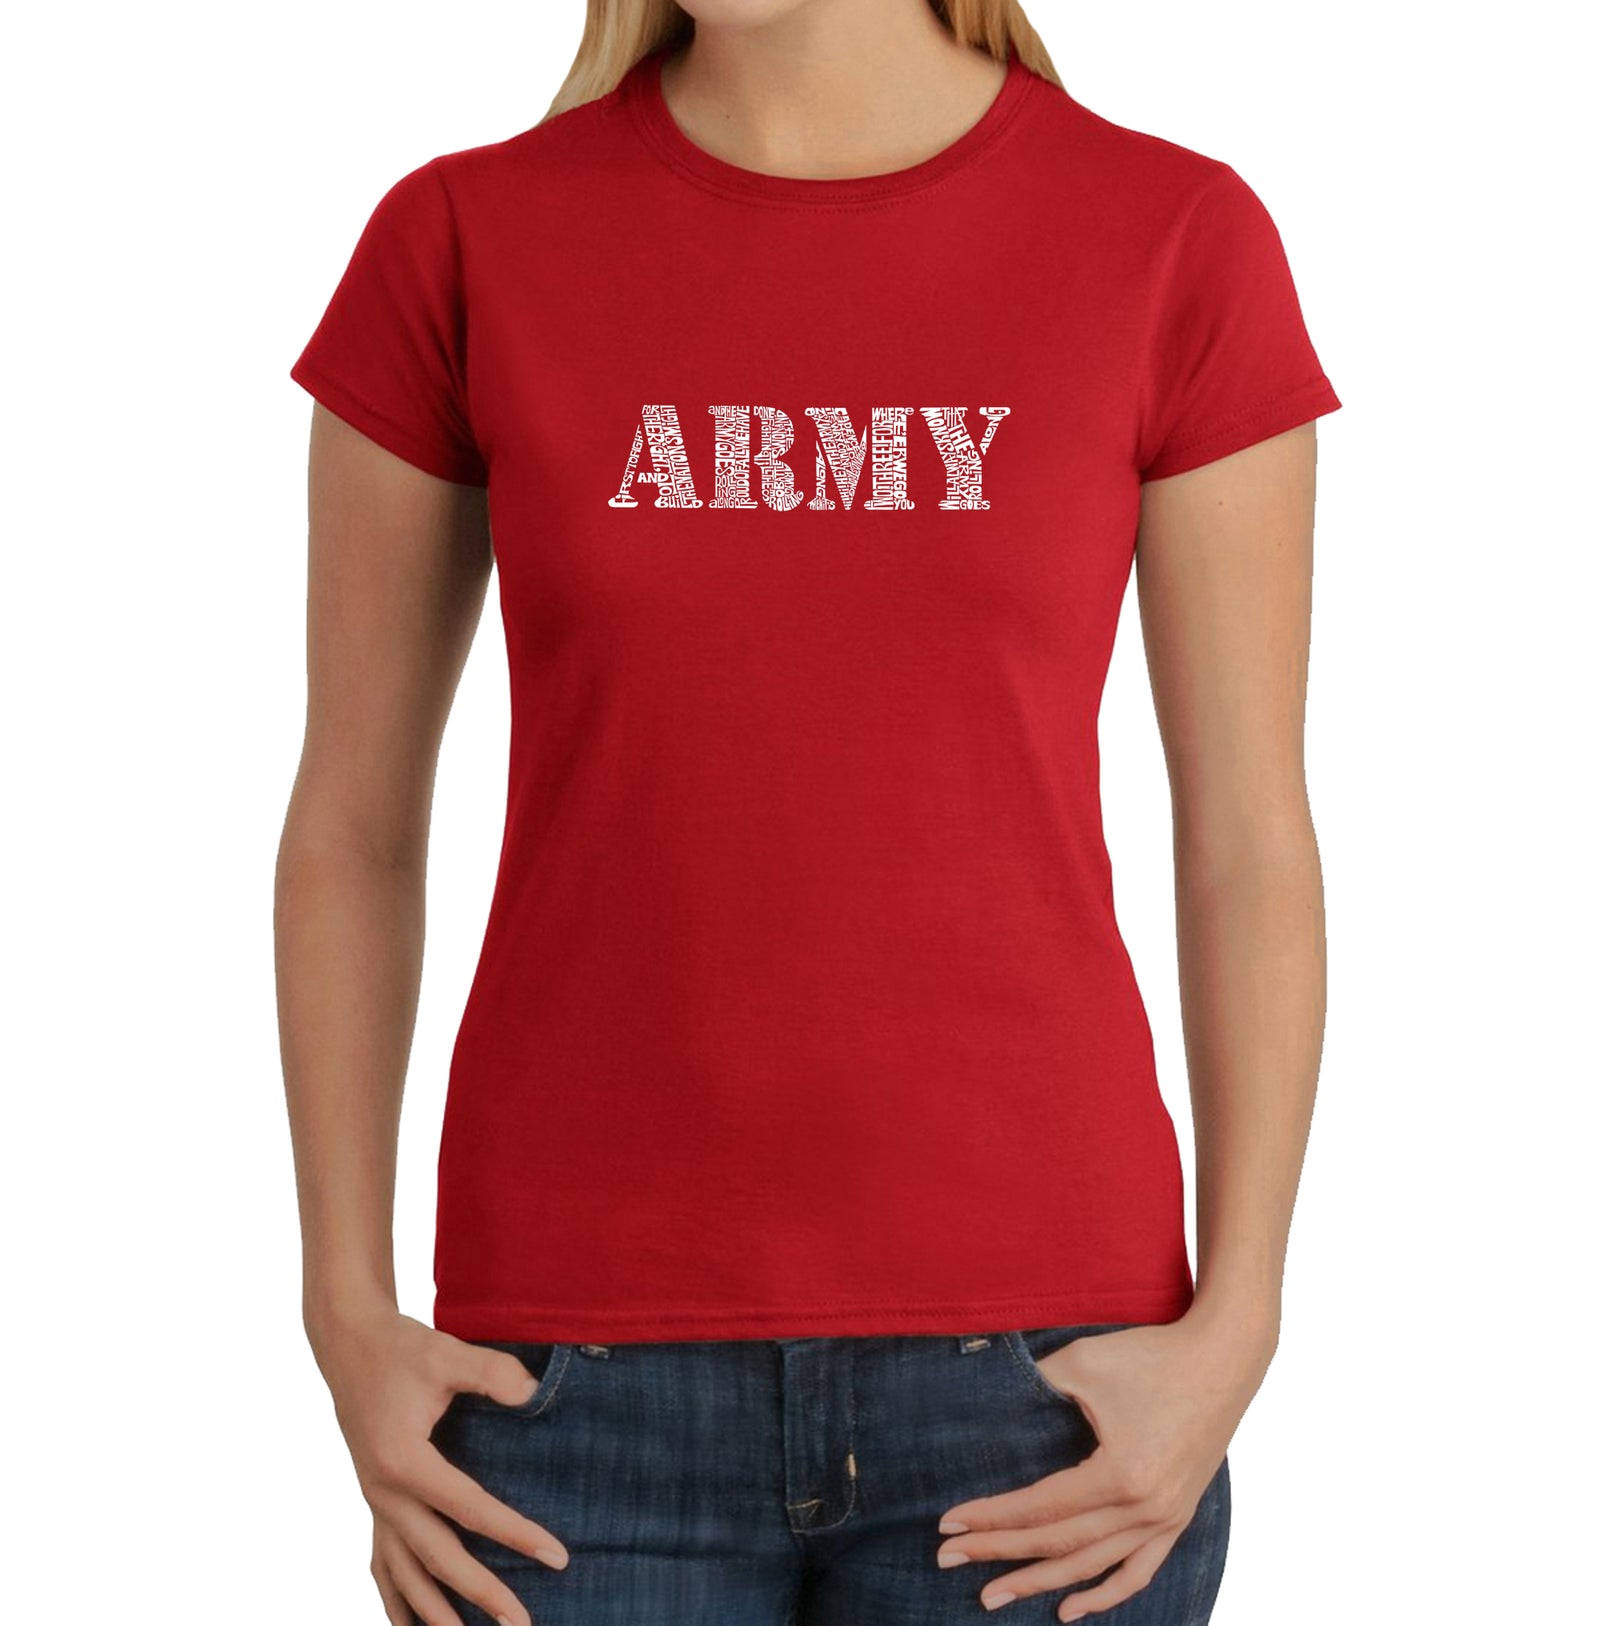 Women's T-Shirt - LYRICS TO THE ARMY SONG